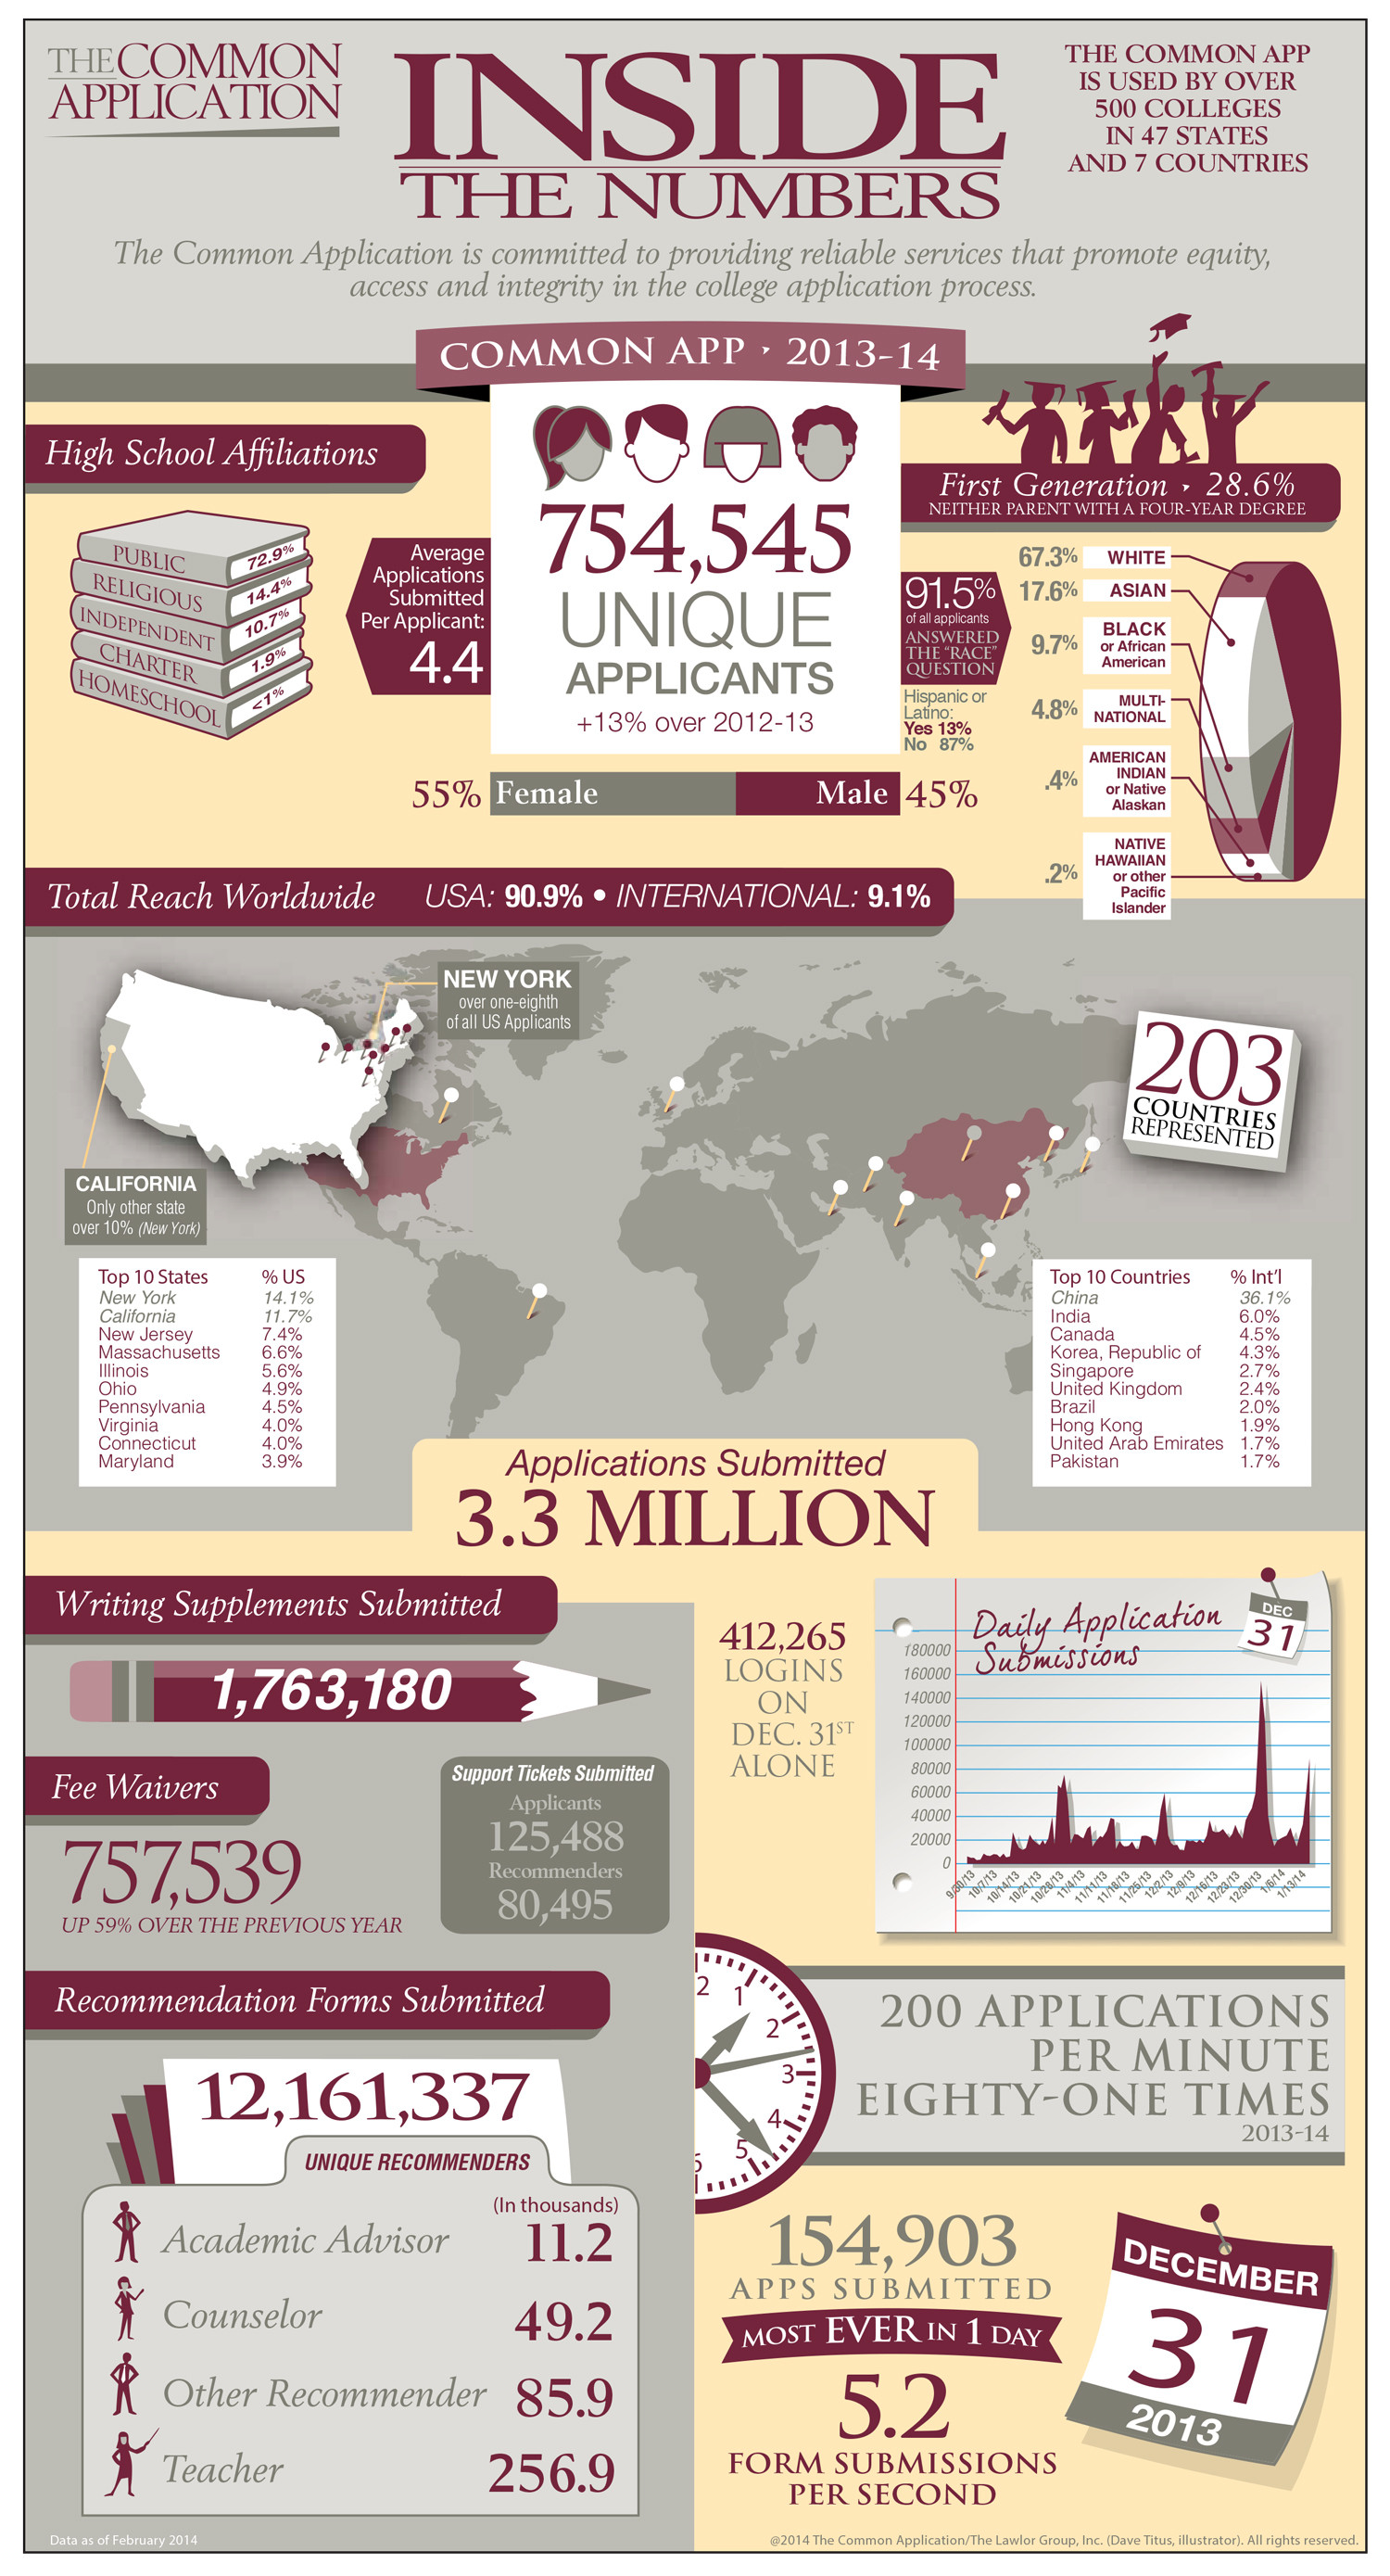 Common Application: Inside the Numbers Infographic